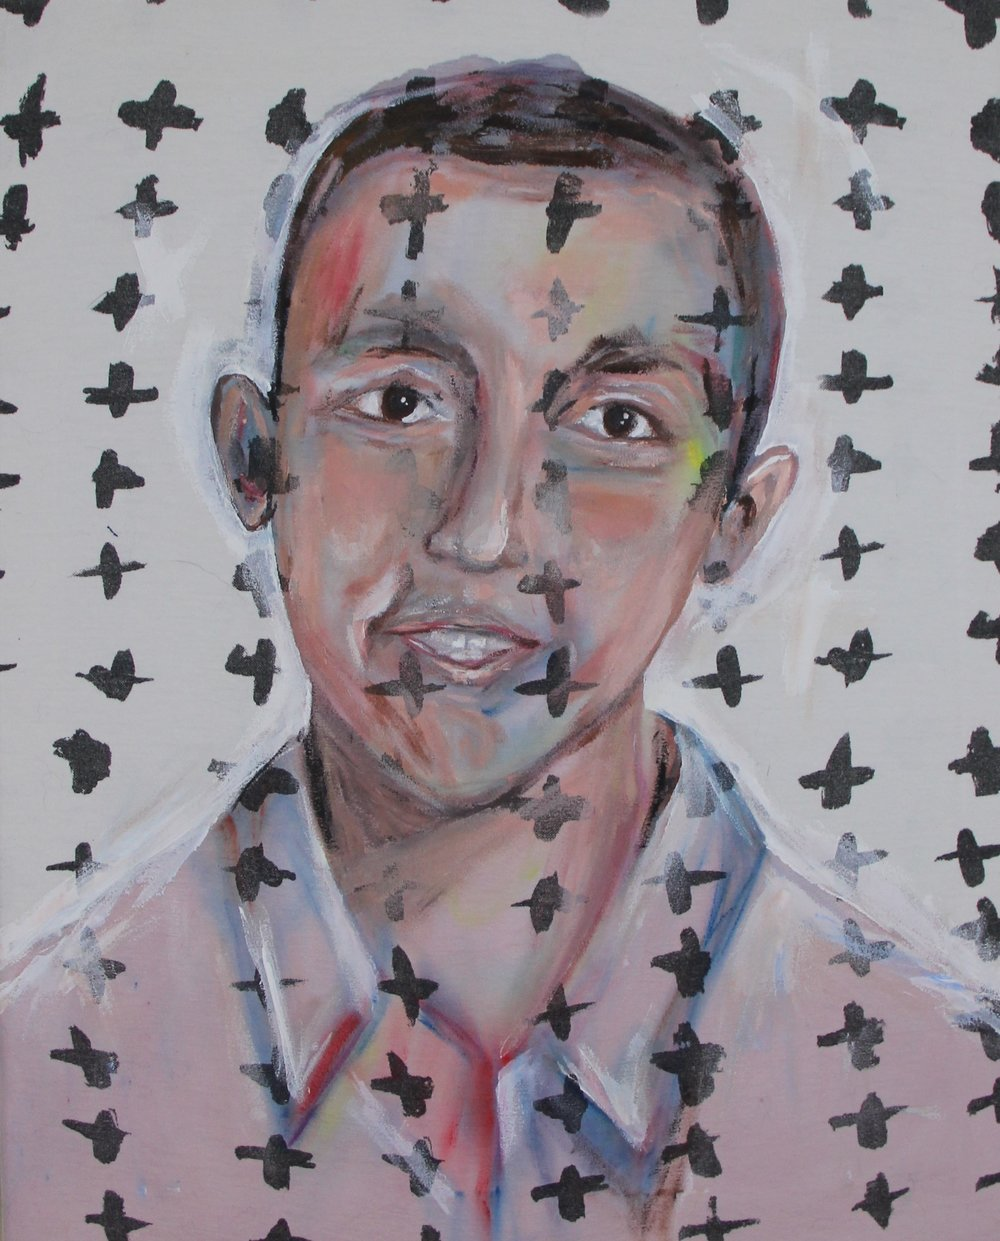 PORTRAIT OF JUSTIN REYES BY CHRISTOPHER HARDGROVE